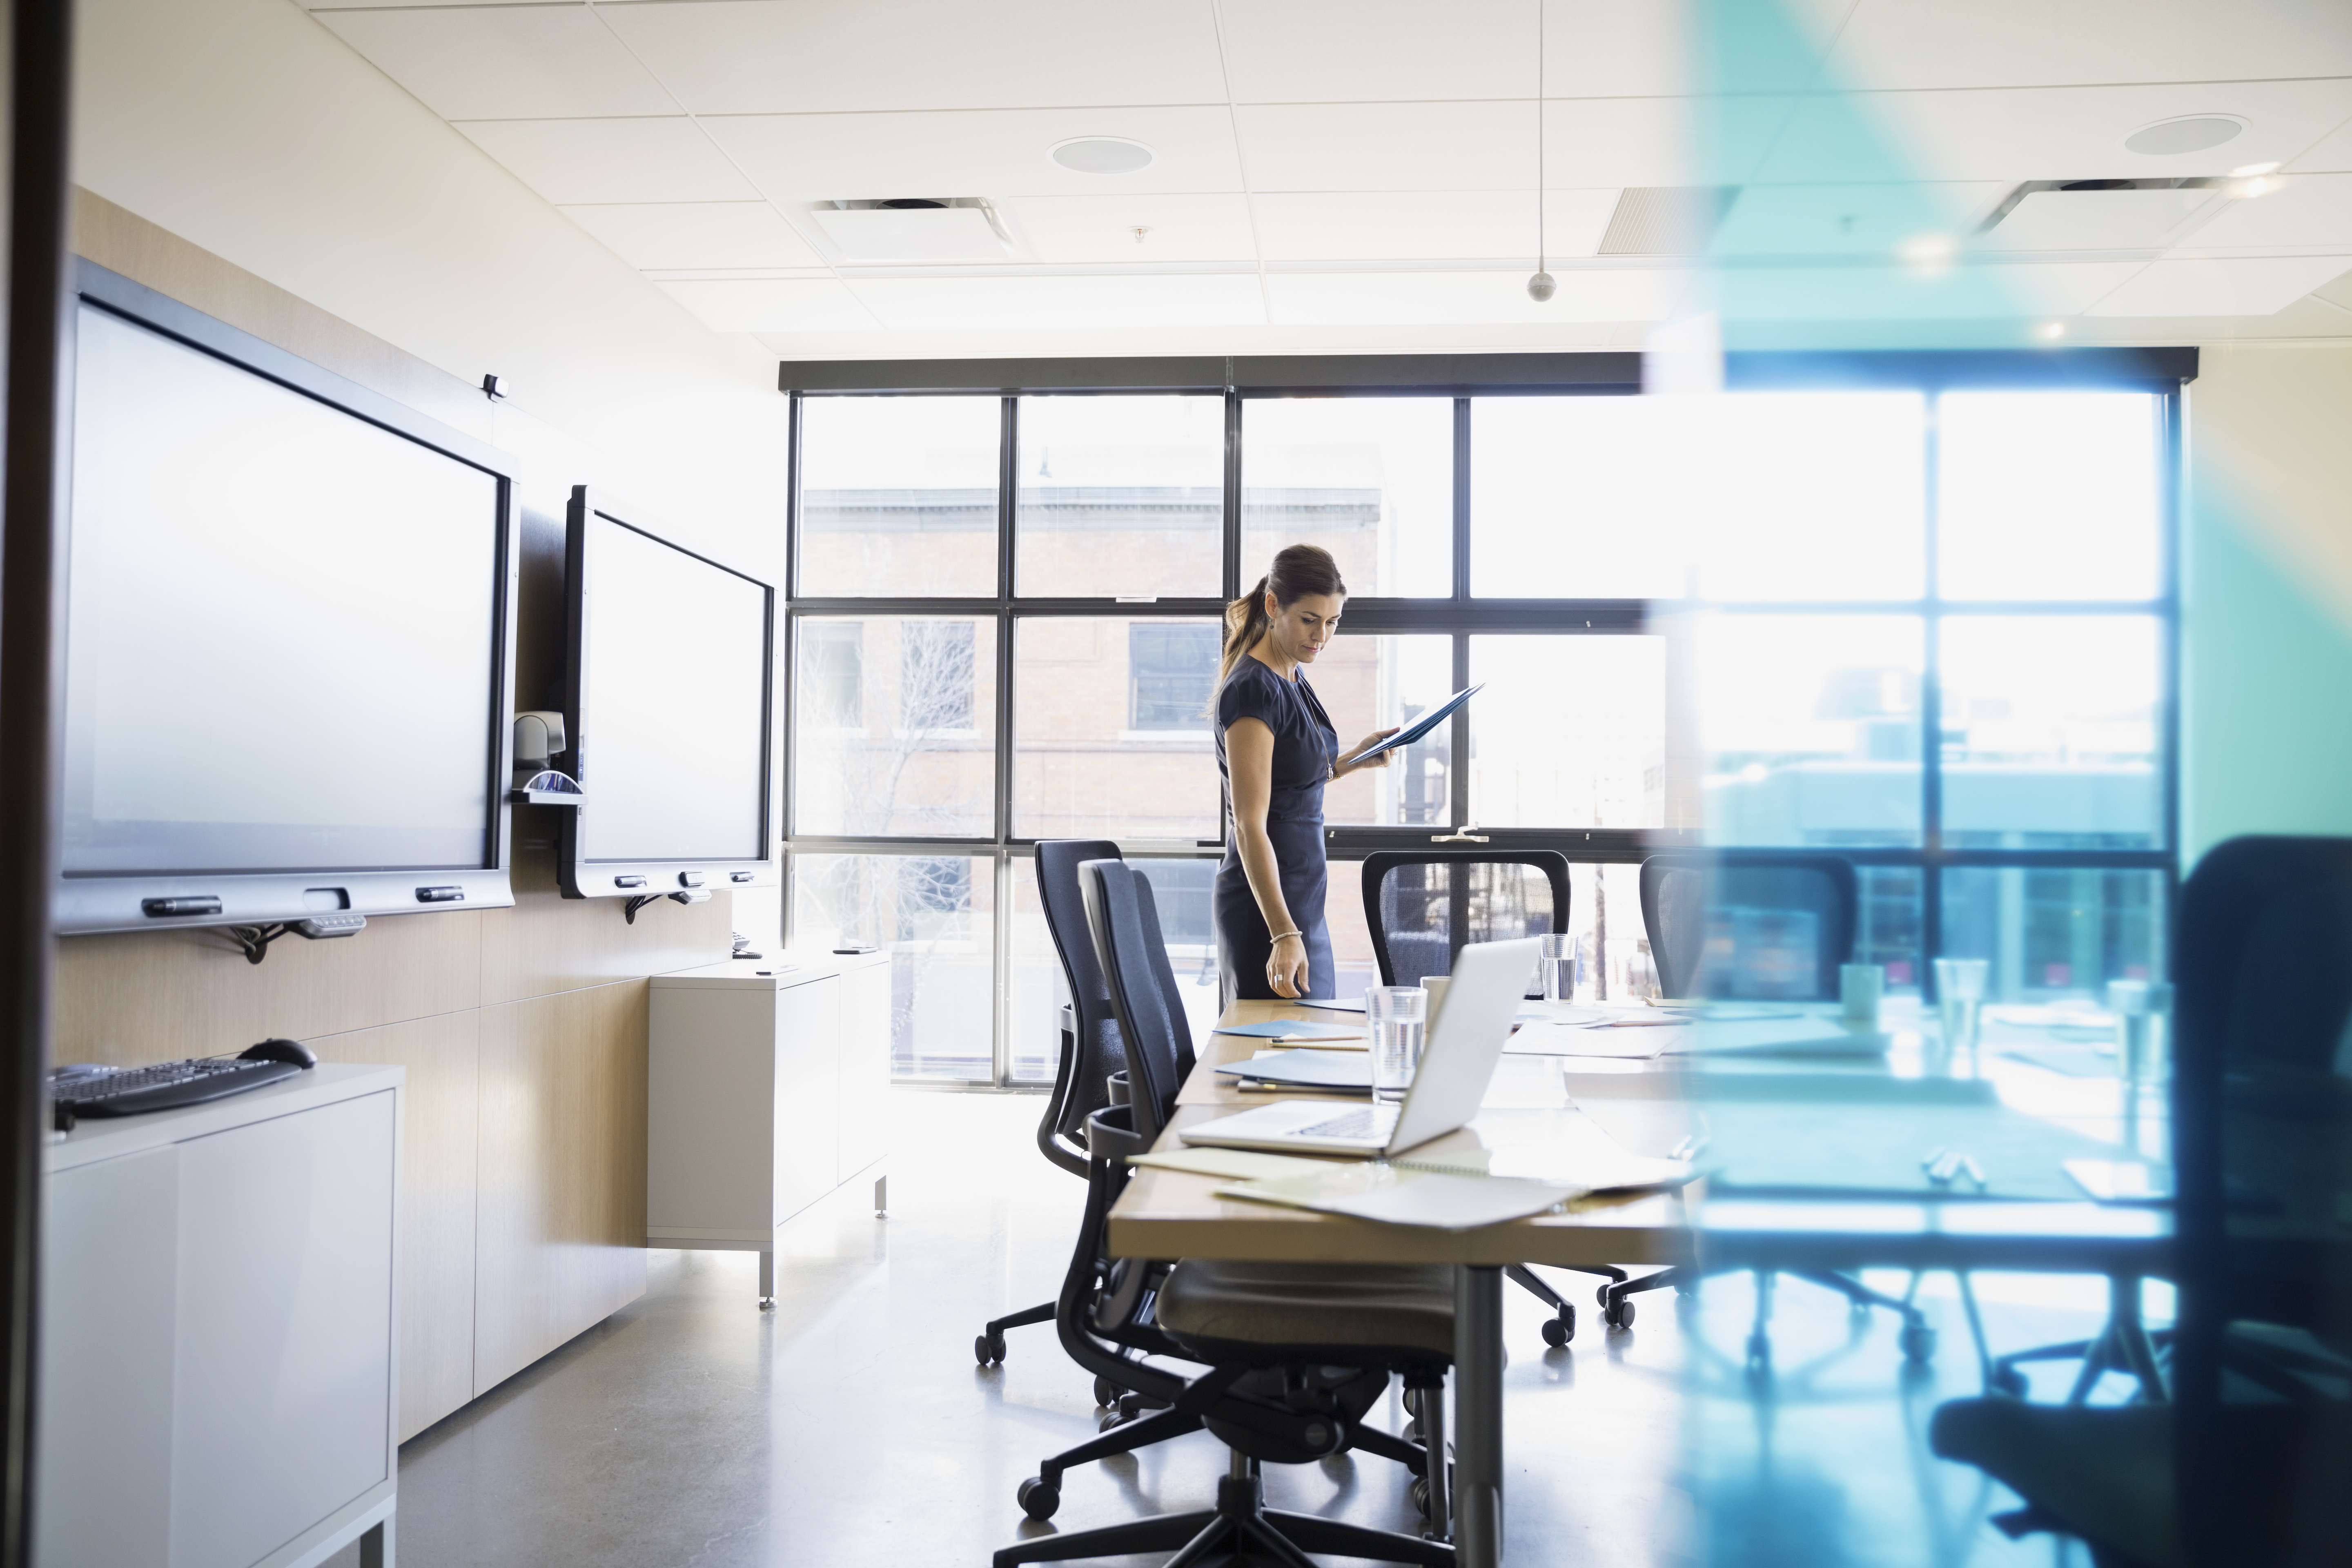 Businesswoman preparing for meeting in conference room